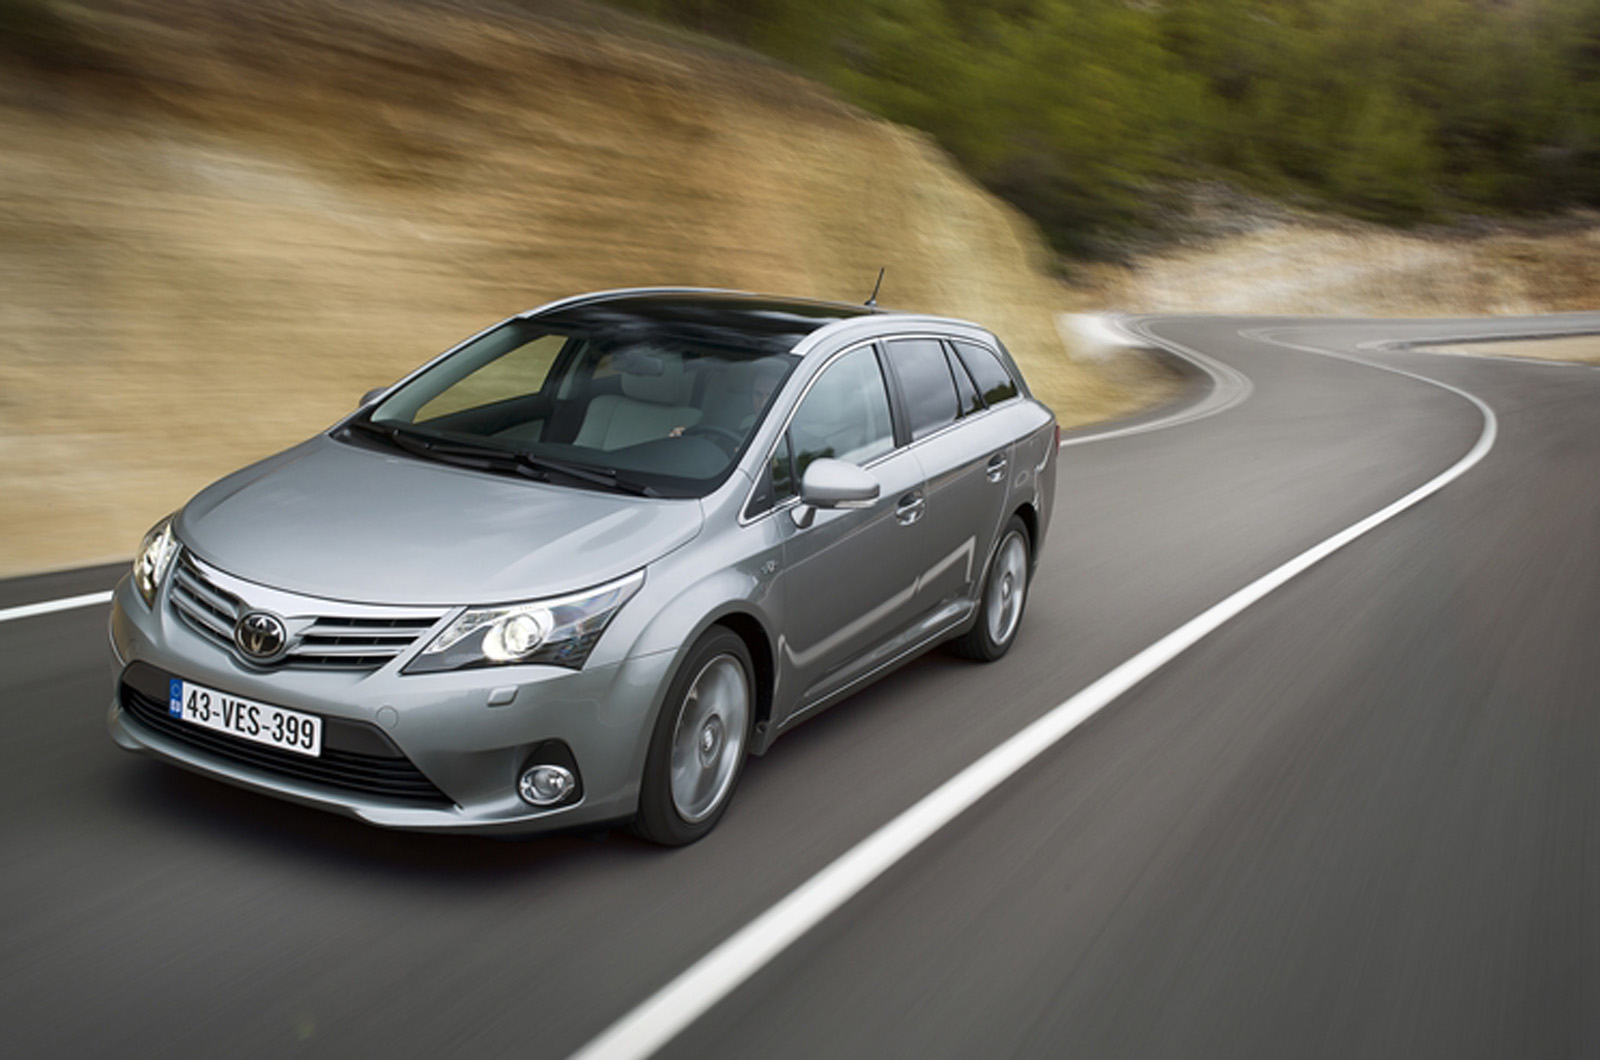 toyota avensis 2.0 d-pic. 3